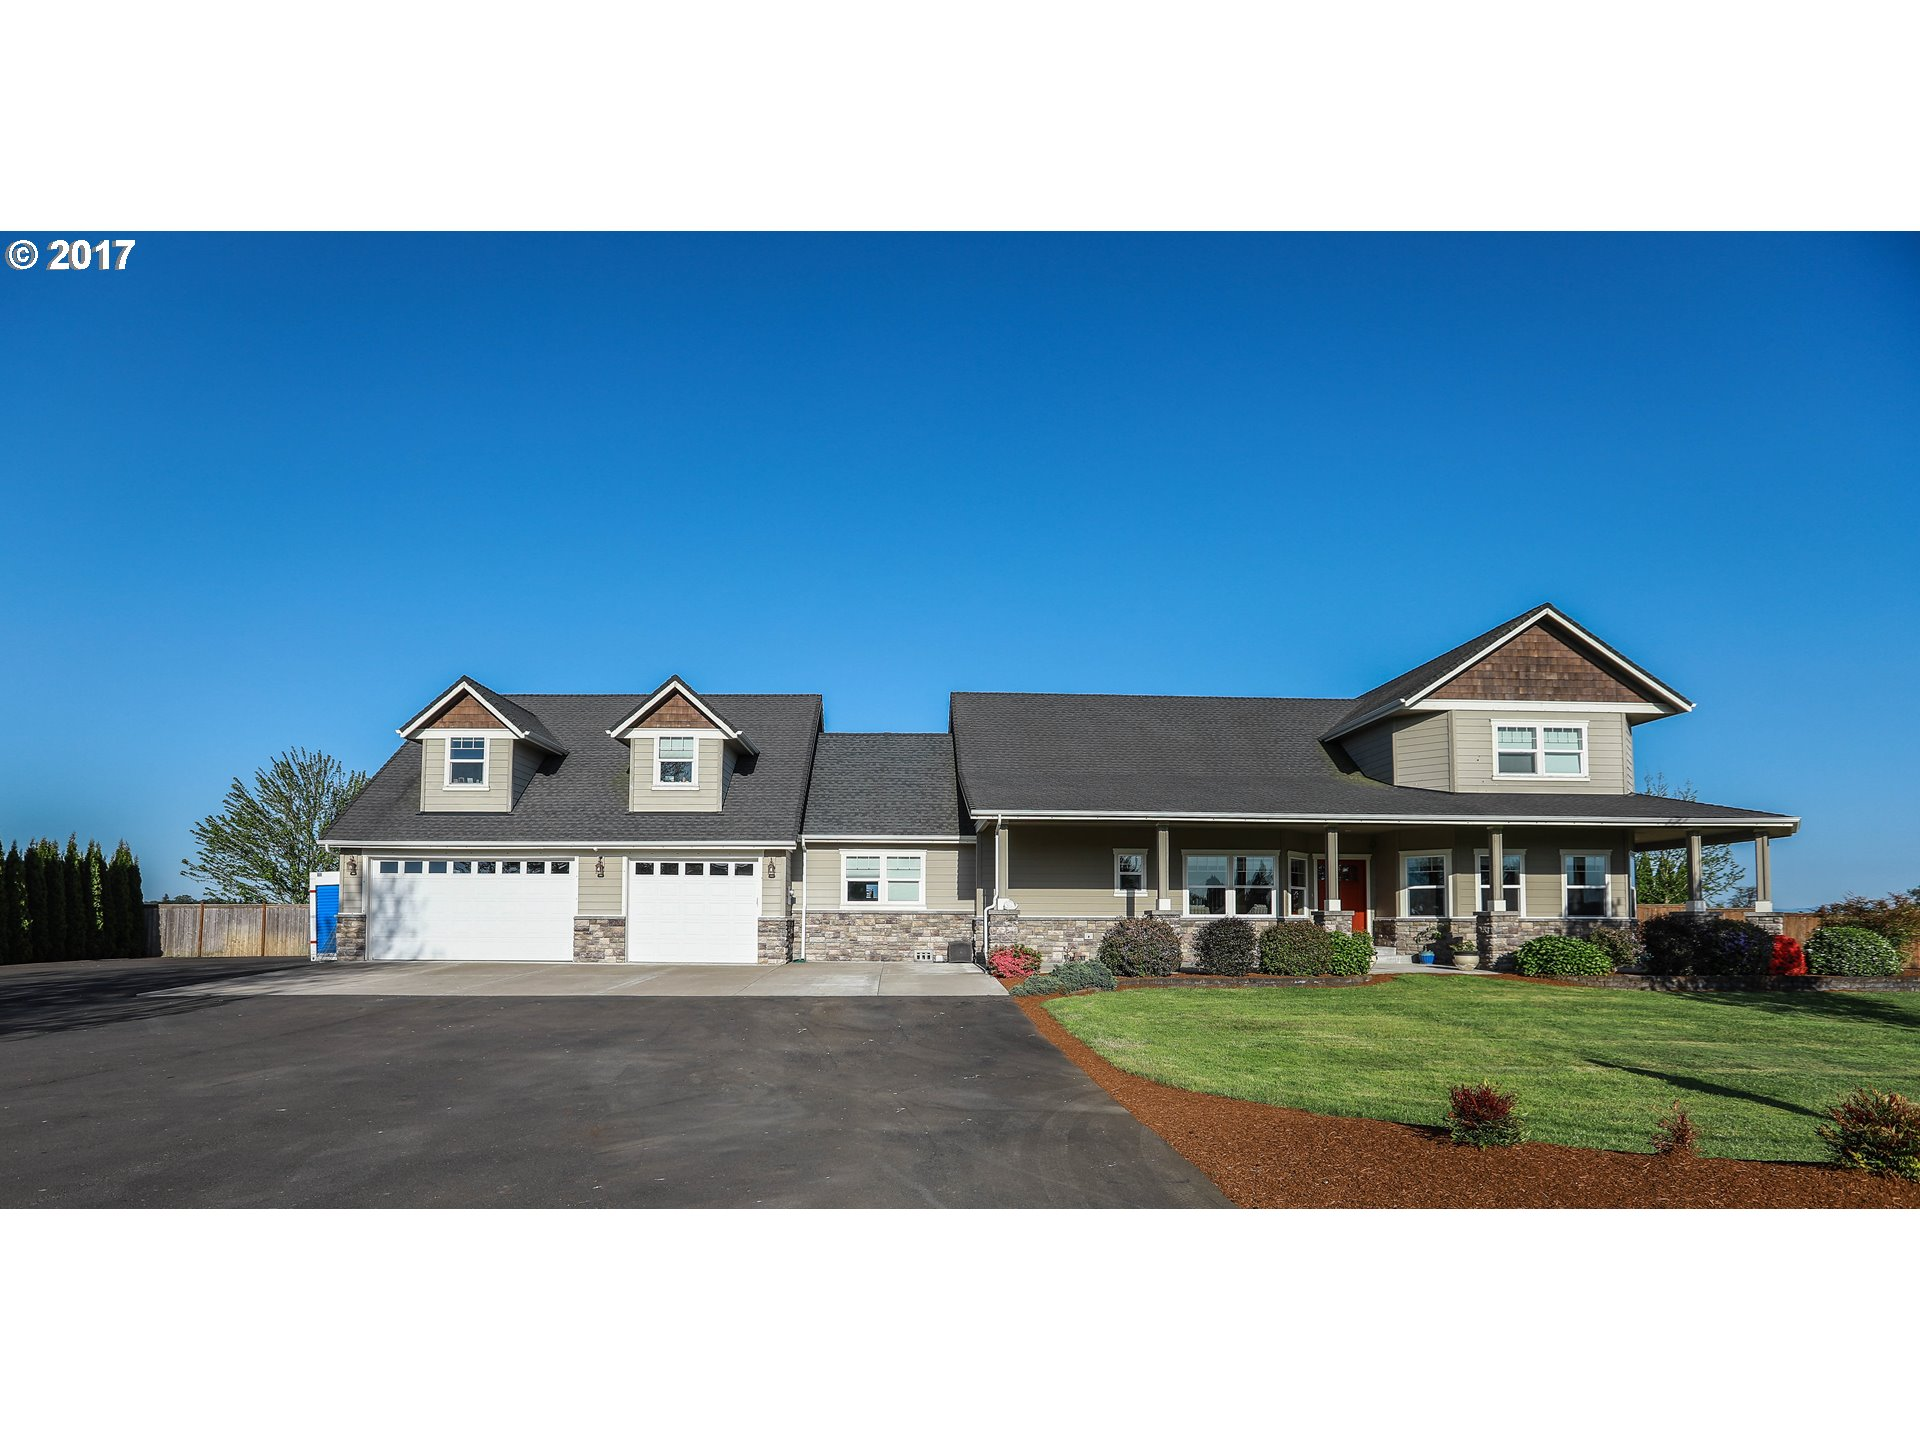 225 E 18TH AVE, Junction City, OR 97448